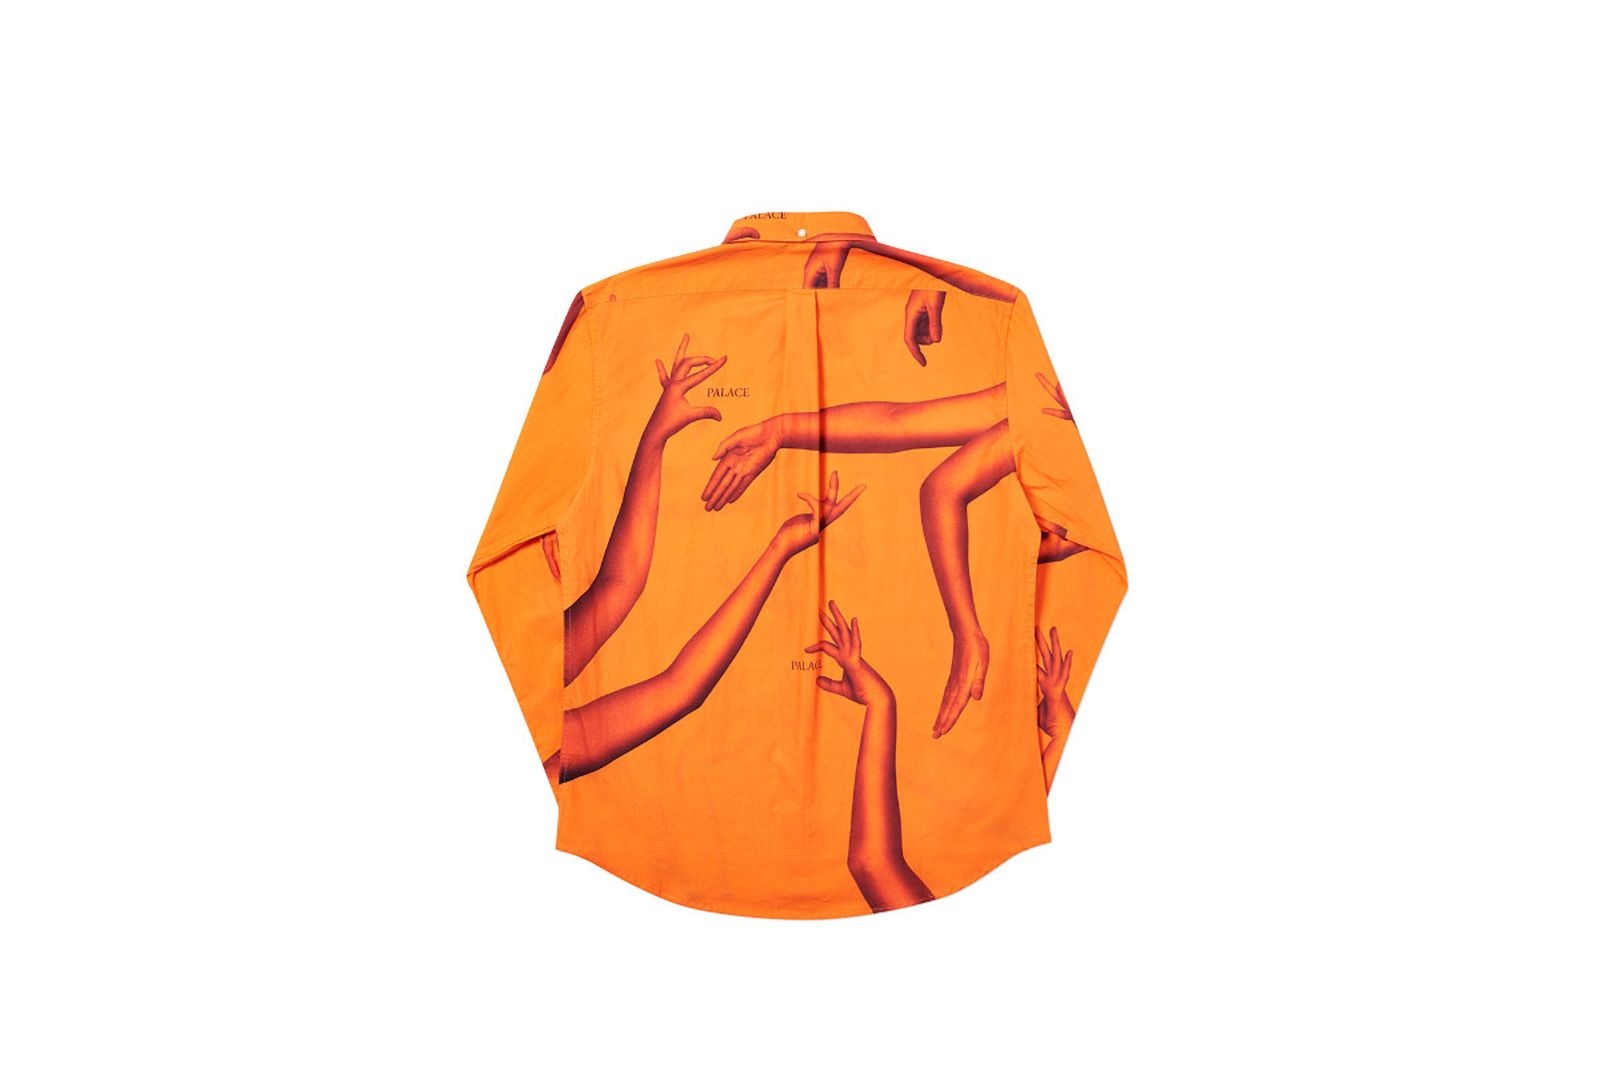 Palace 2019 Autumn Shirt Armbus orange back fw19